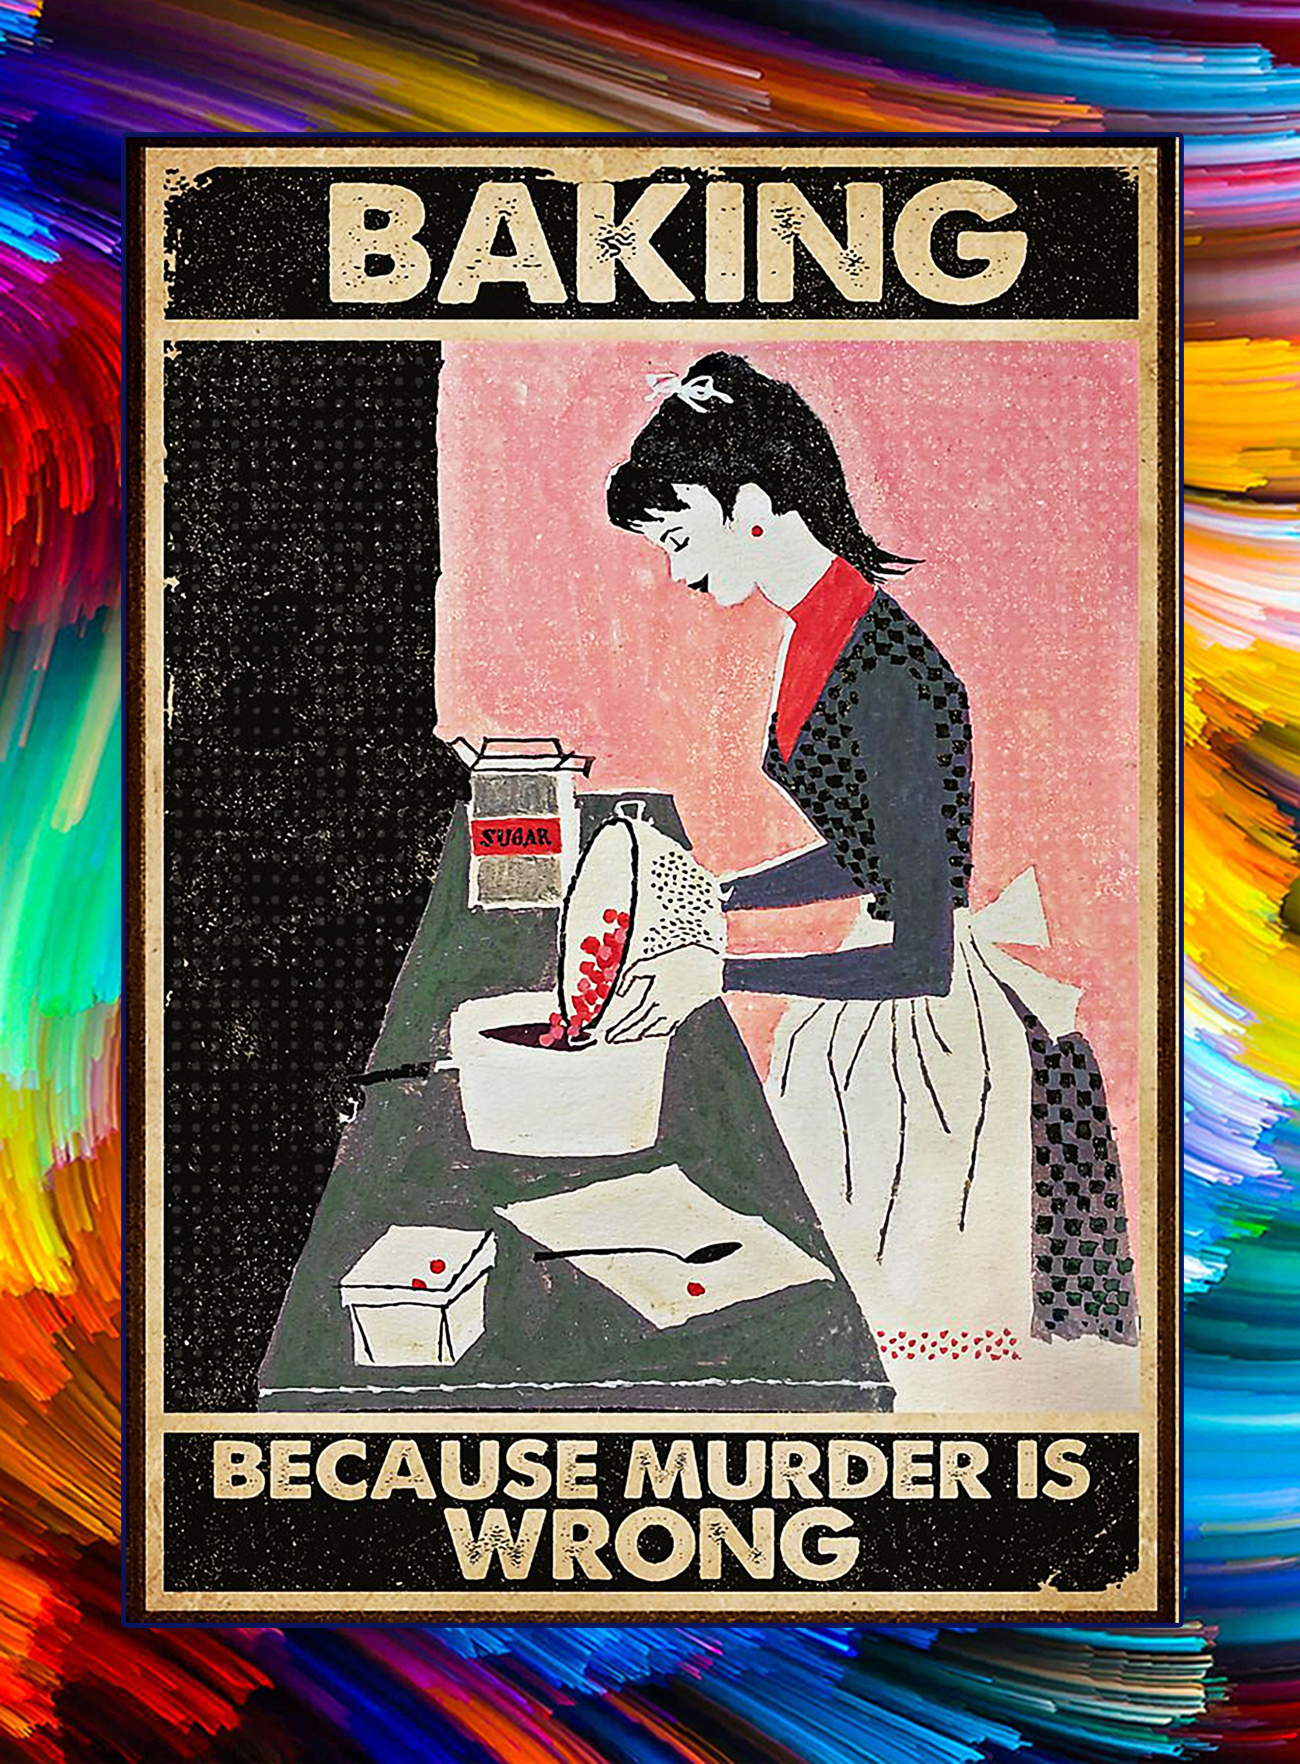 Baking because murder is wrong poster - A1